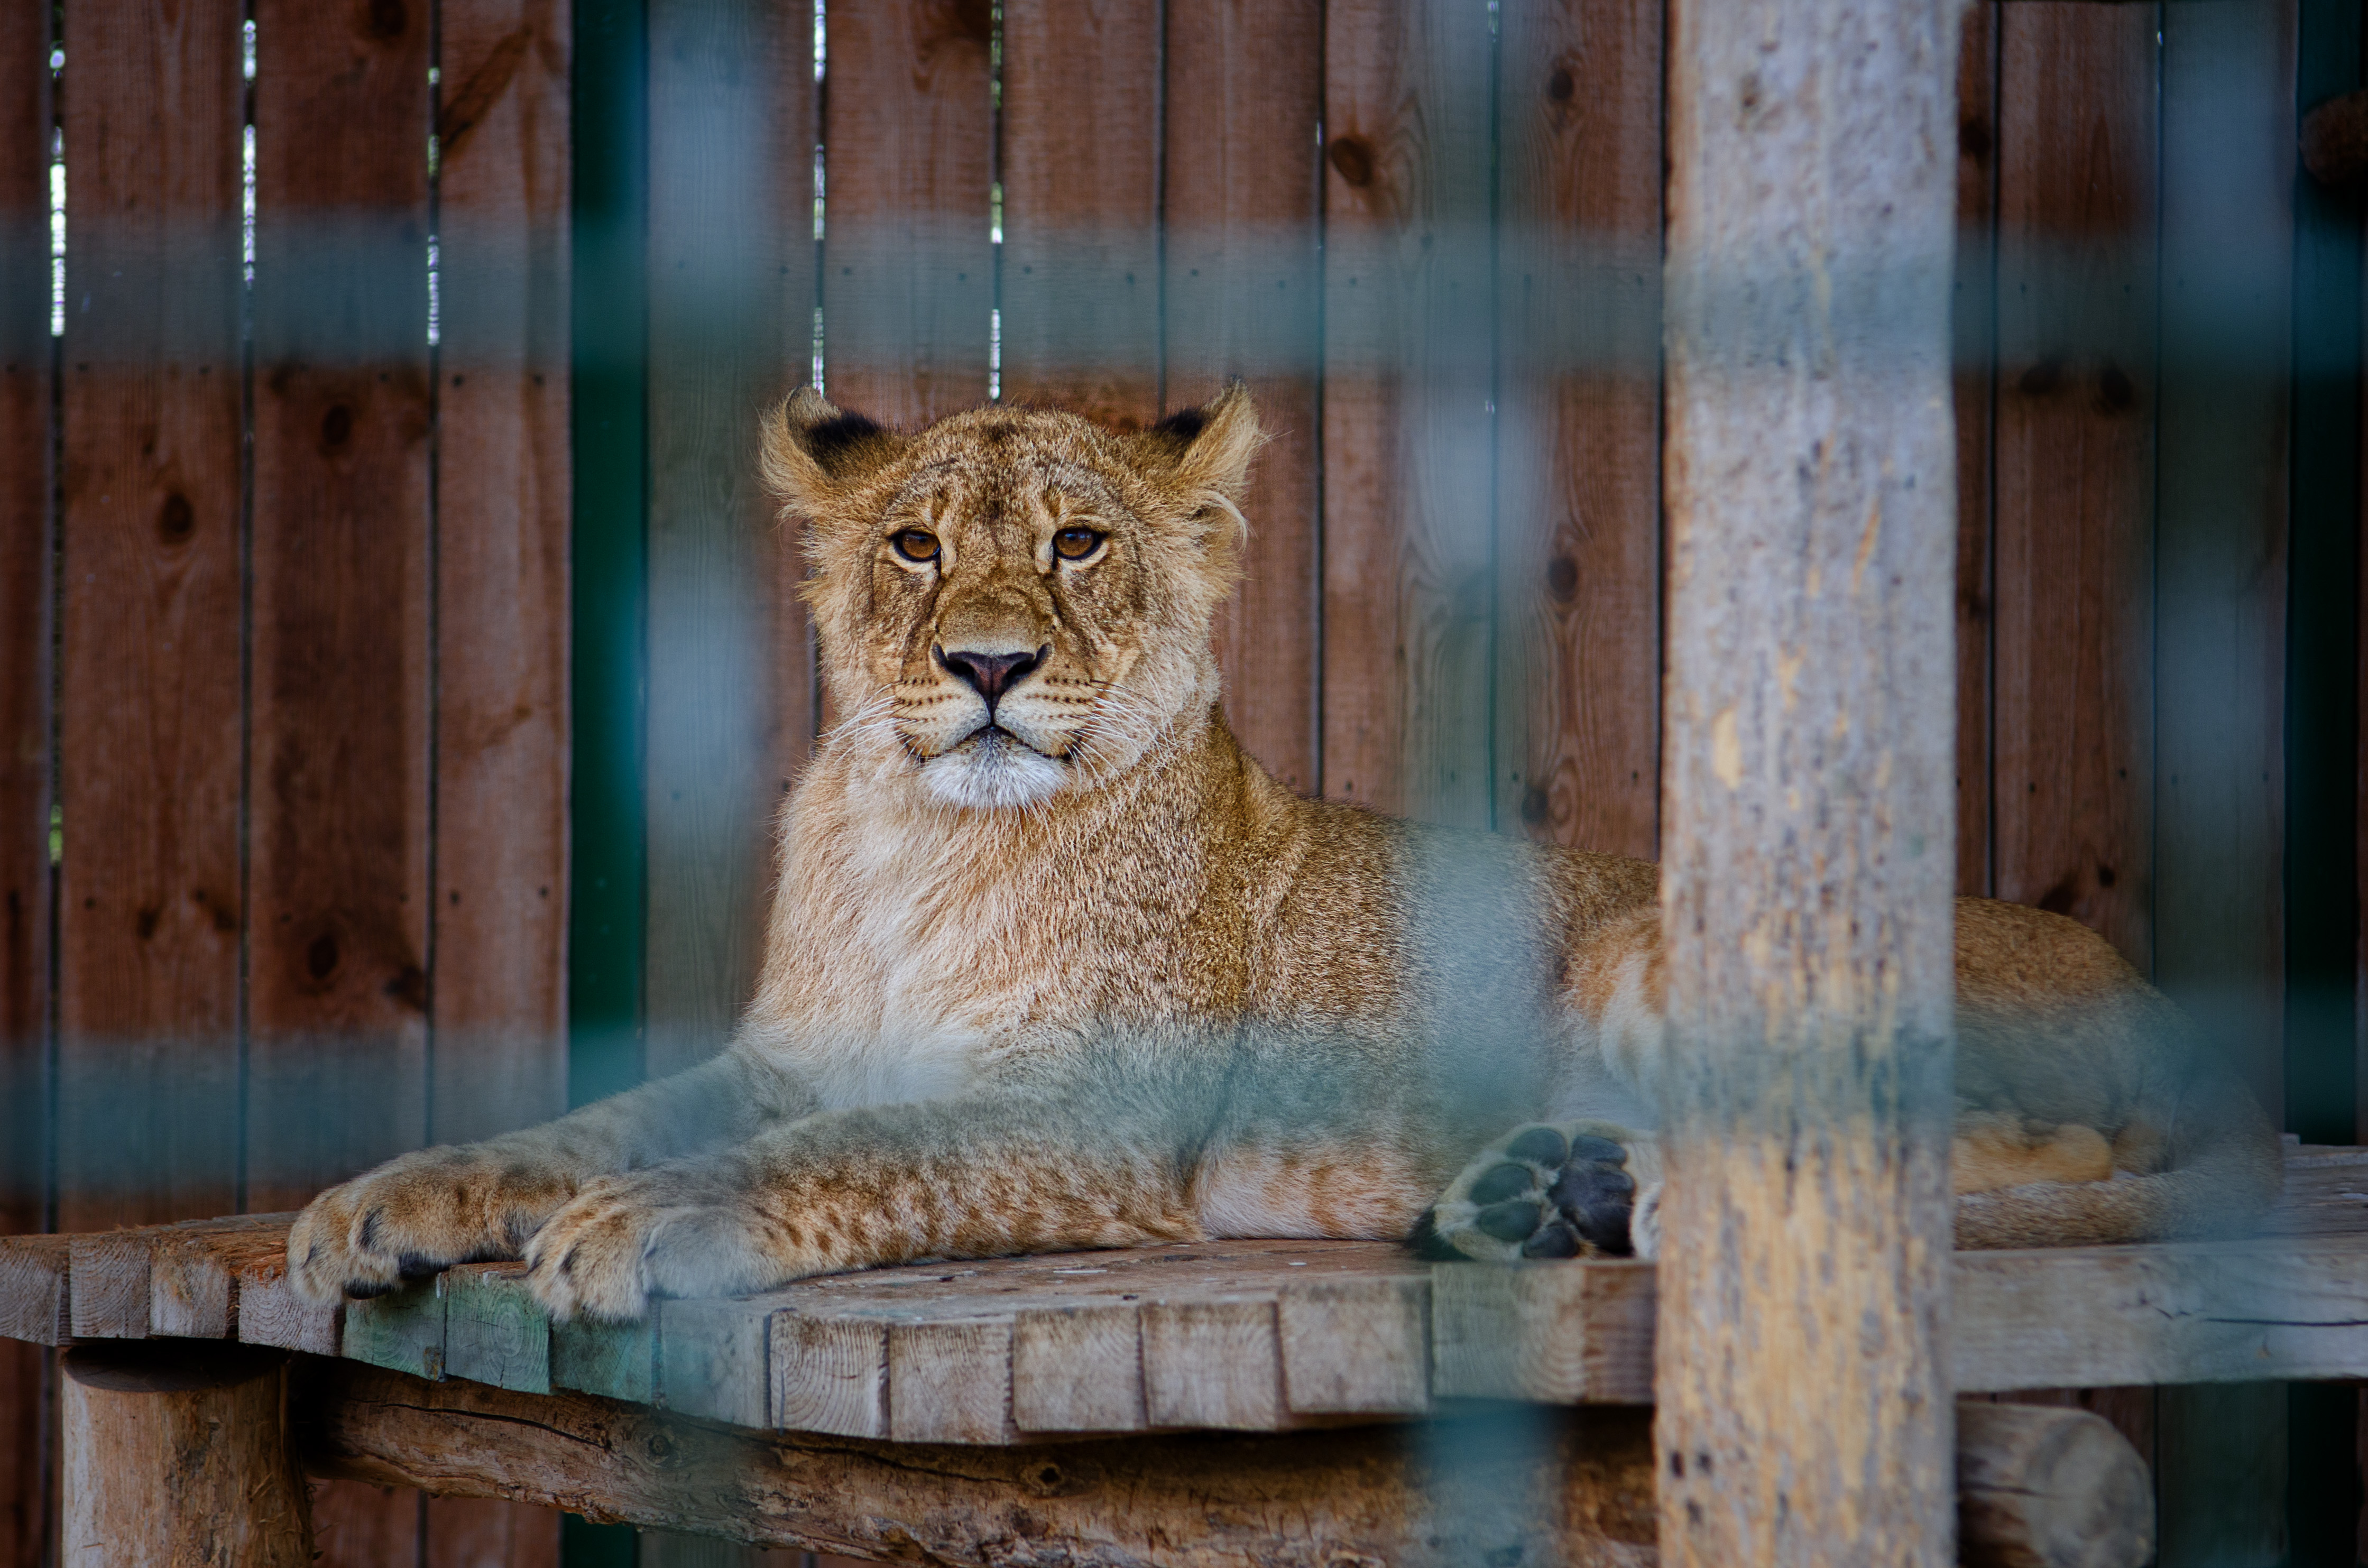 captive big cat